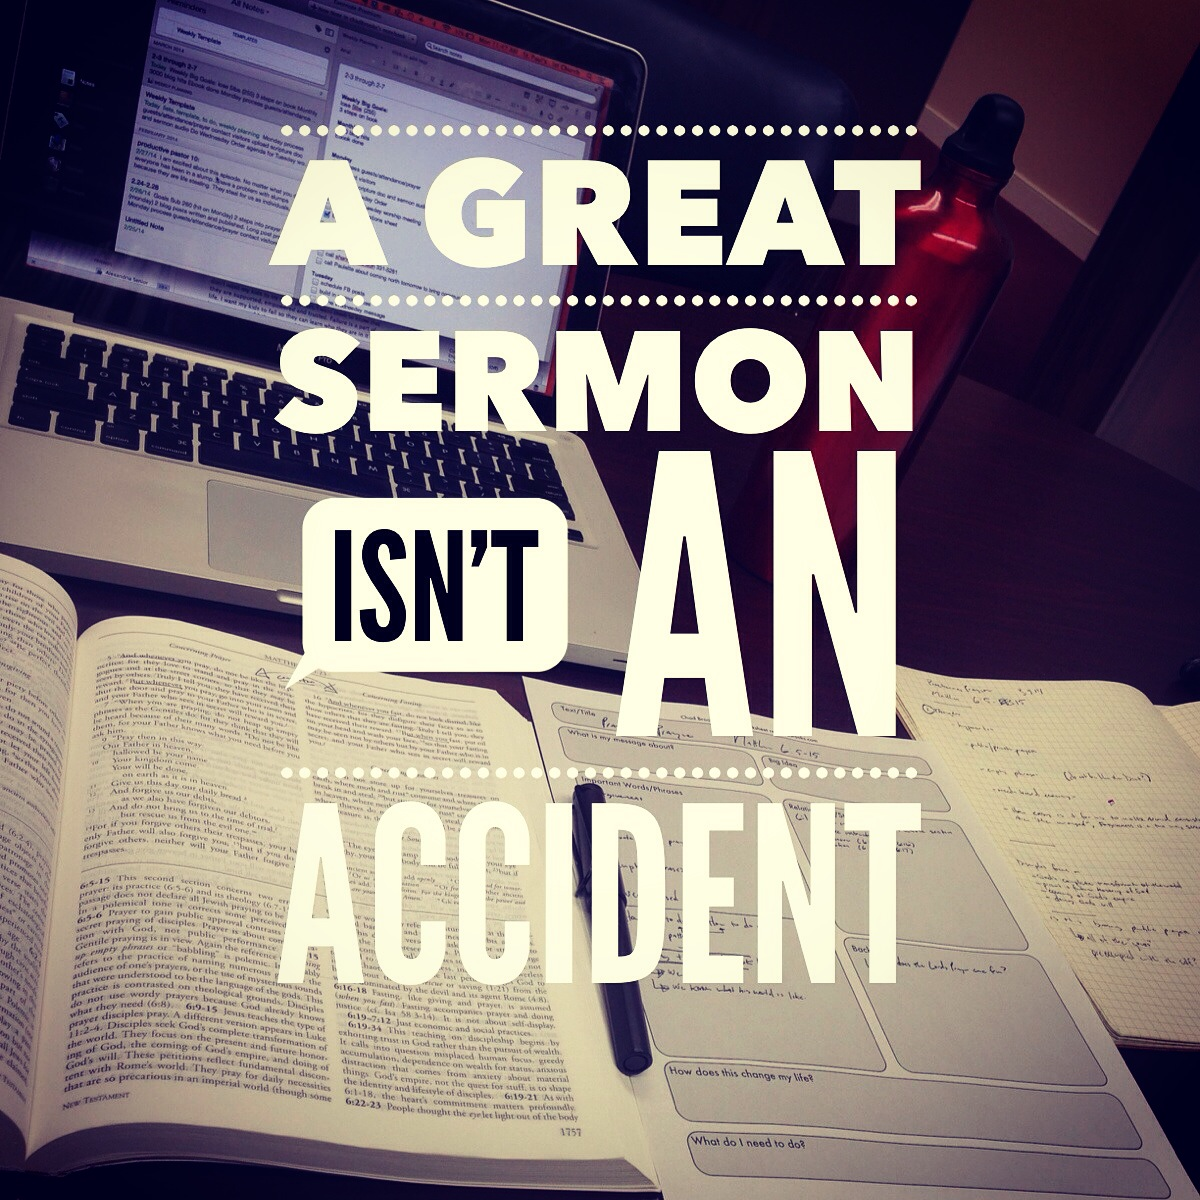 Two Helpful Resources for Efficient Sermon Preparation